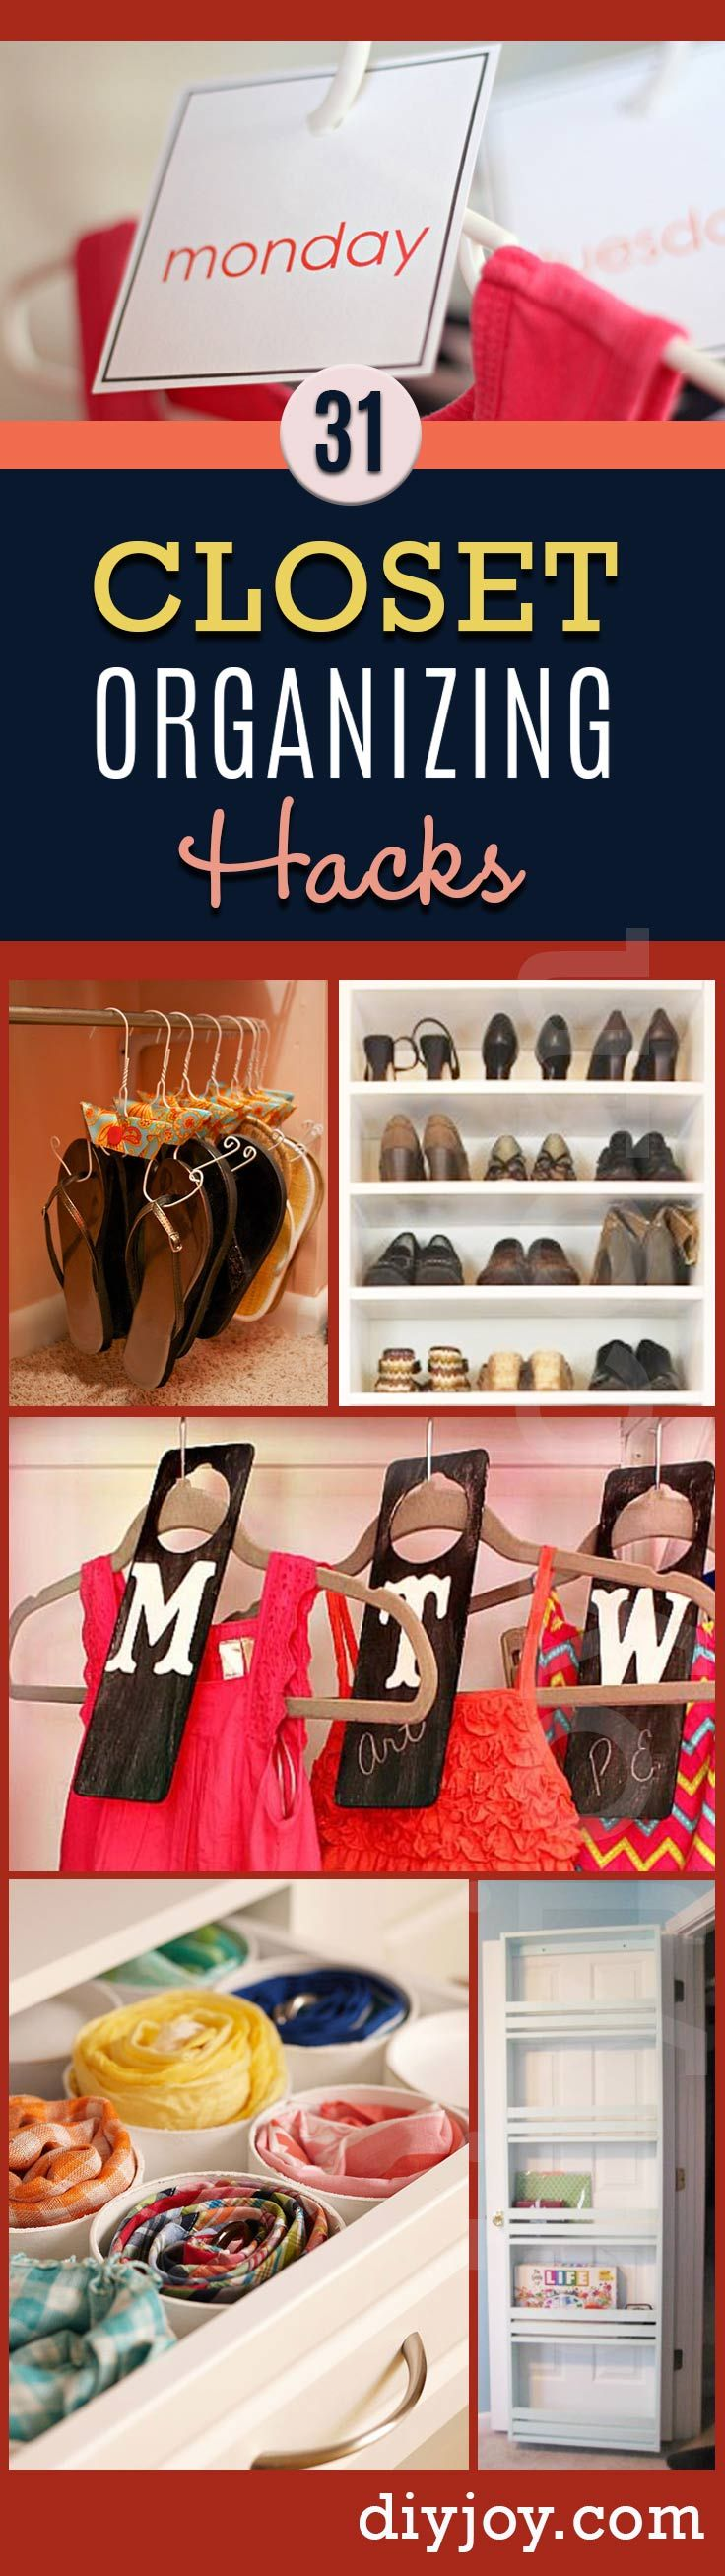 DIY Closet Organizing Tips - DIY Closet Organization Ideas for Messy Closets and Small Spaces. Organizing Hacks and Homemade Shelving And Storage Tips for Garage, Pantry, Bedroom., Clothes and Kitchen http://diyjoy.com/diy-closet-organization-ideas